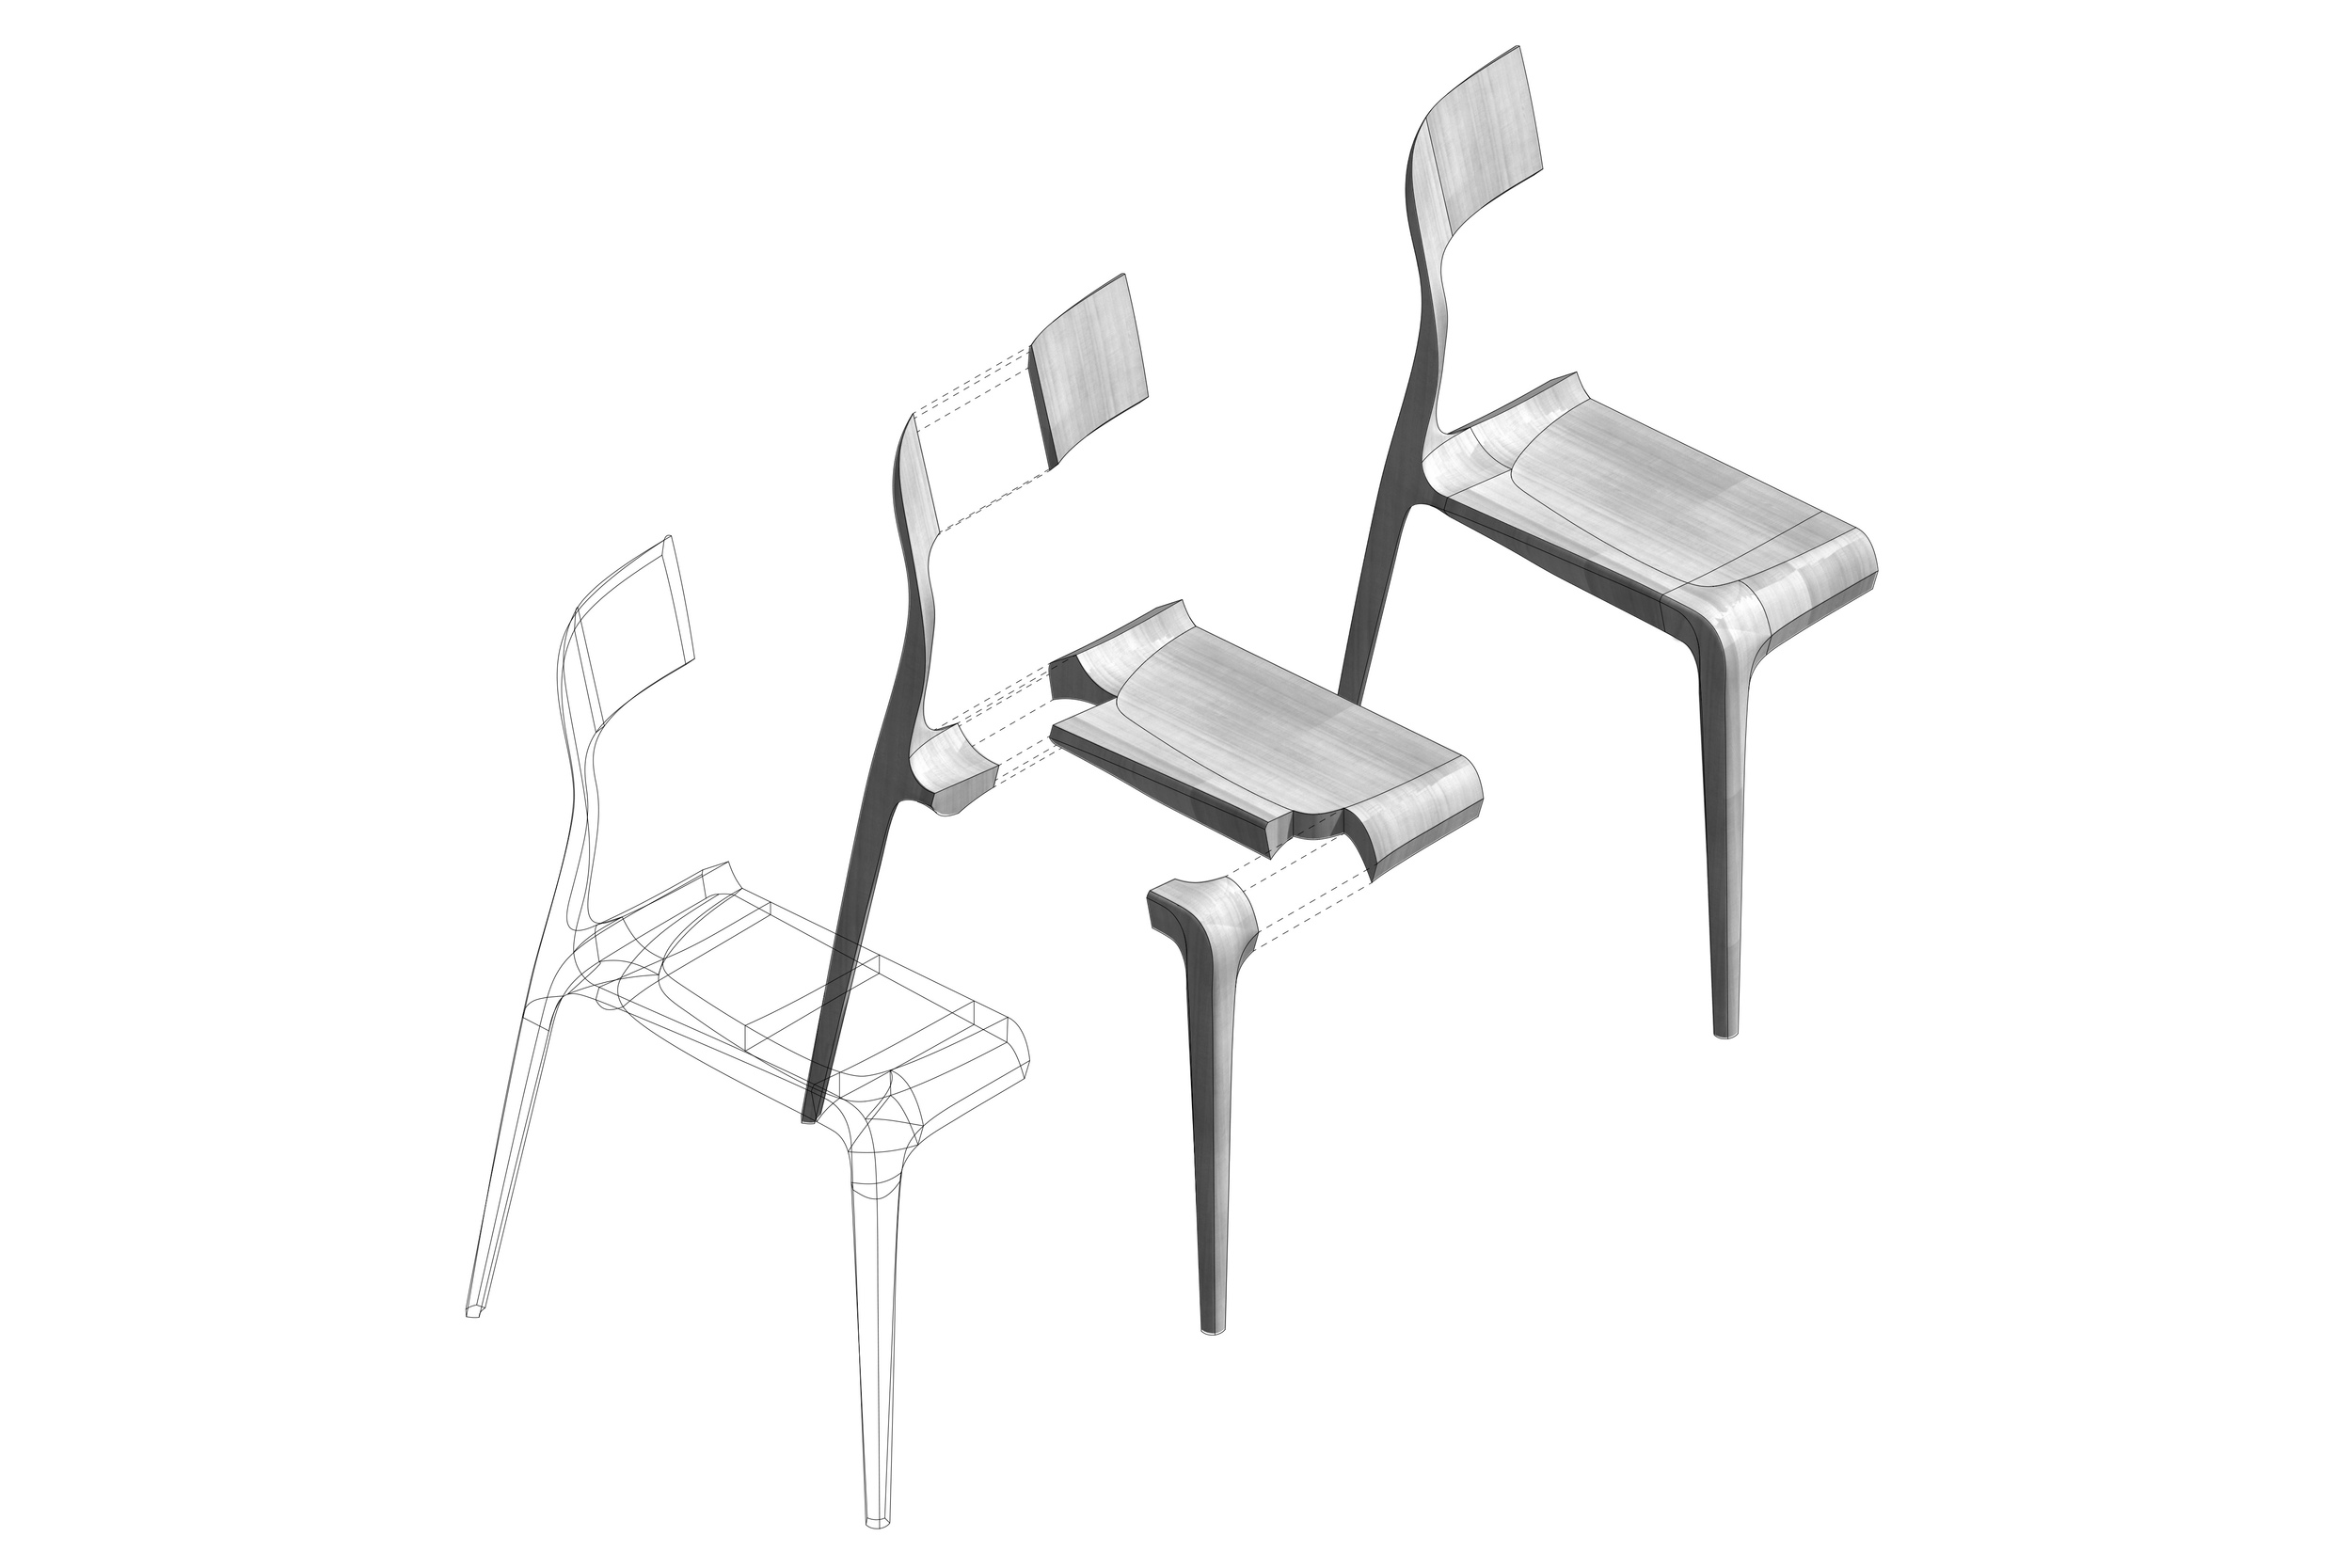 Southard_1224b_Chair_Final 4.jpg